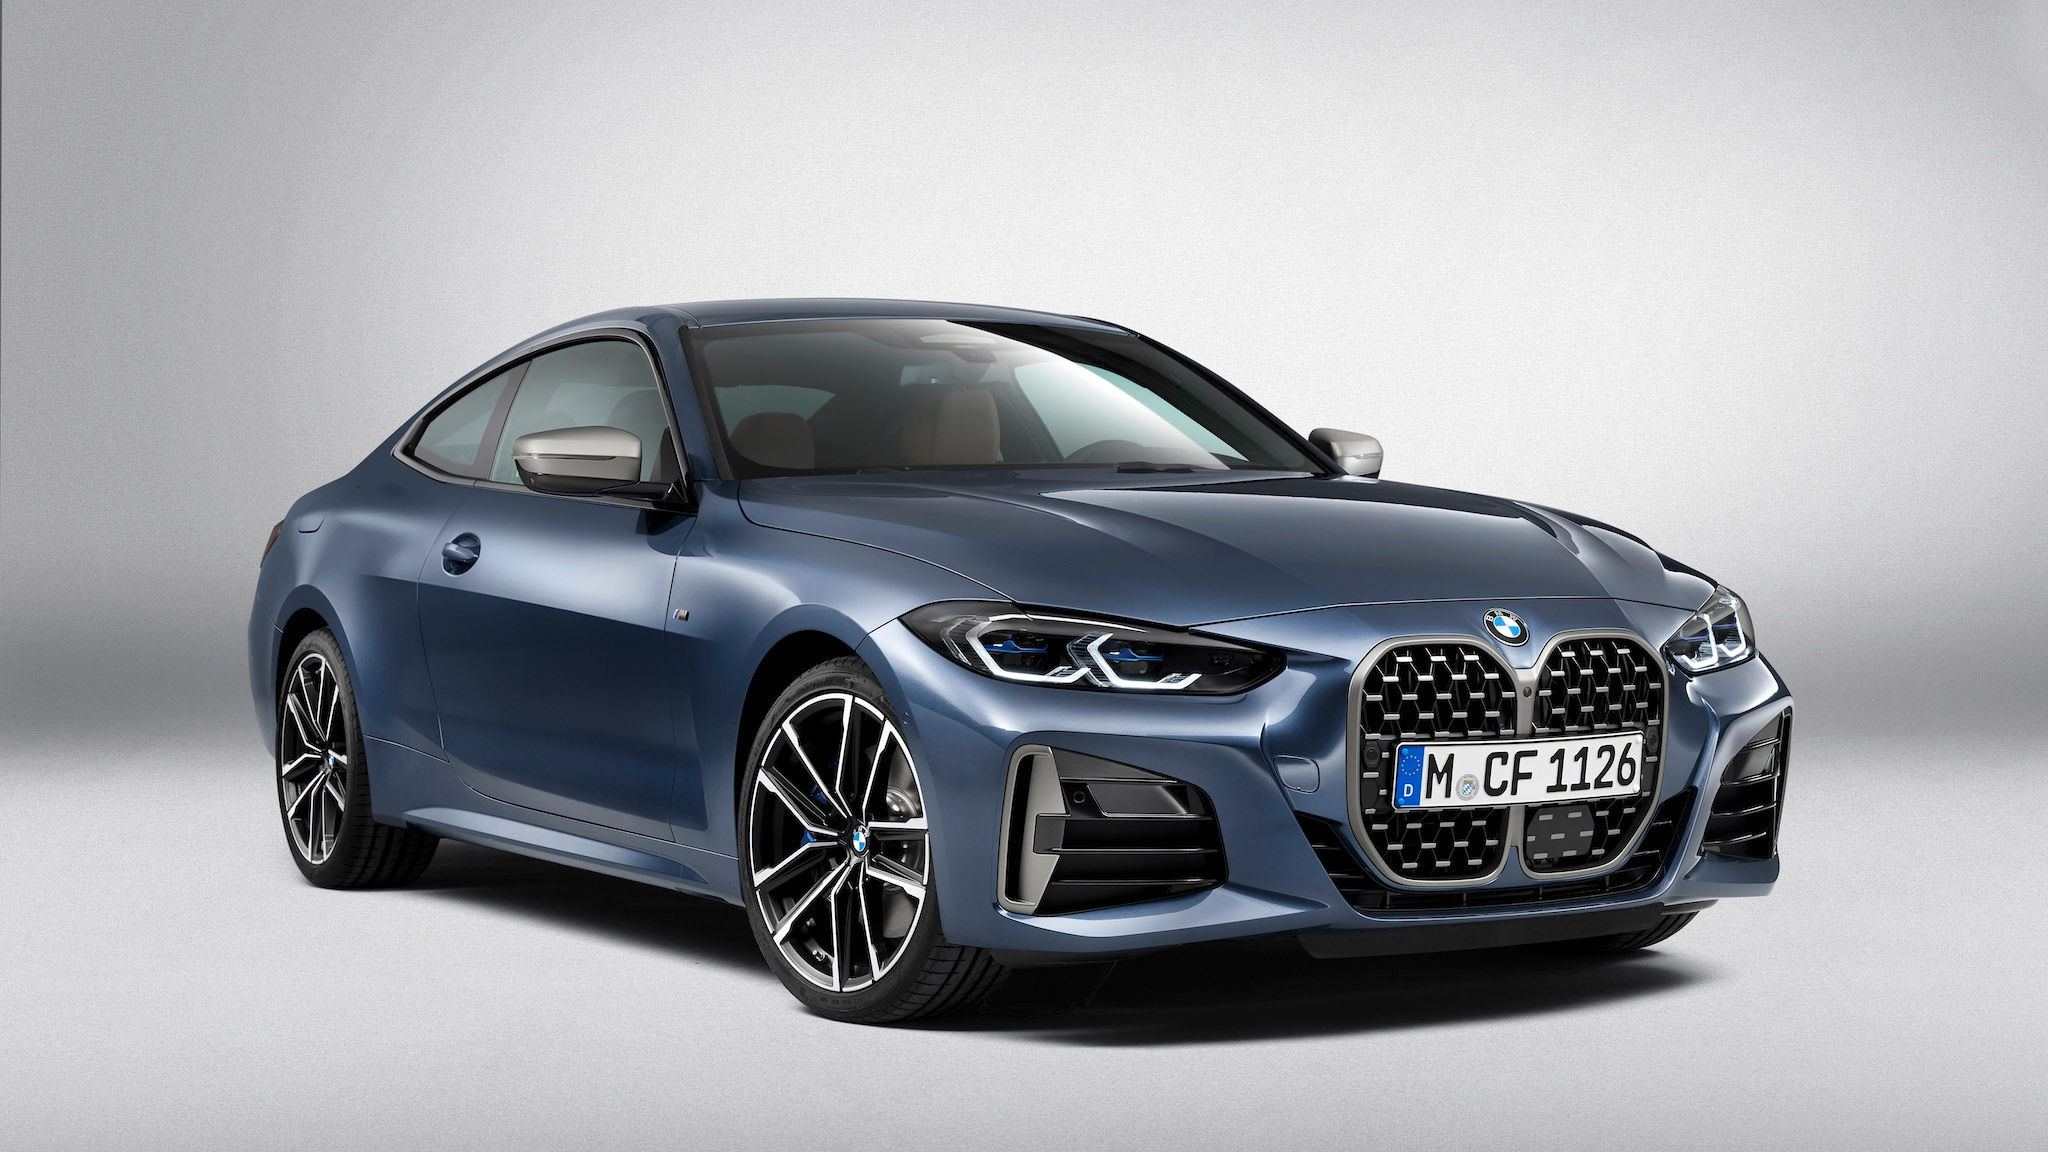 2021 BMW 4 Series First Look: The Bimmer With the Big Grille